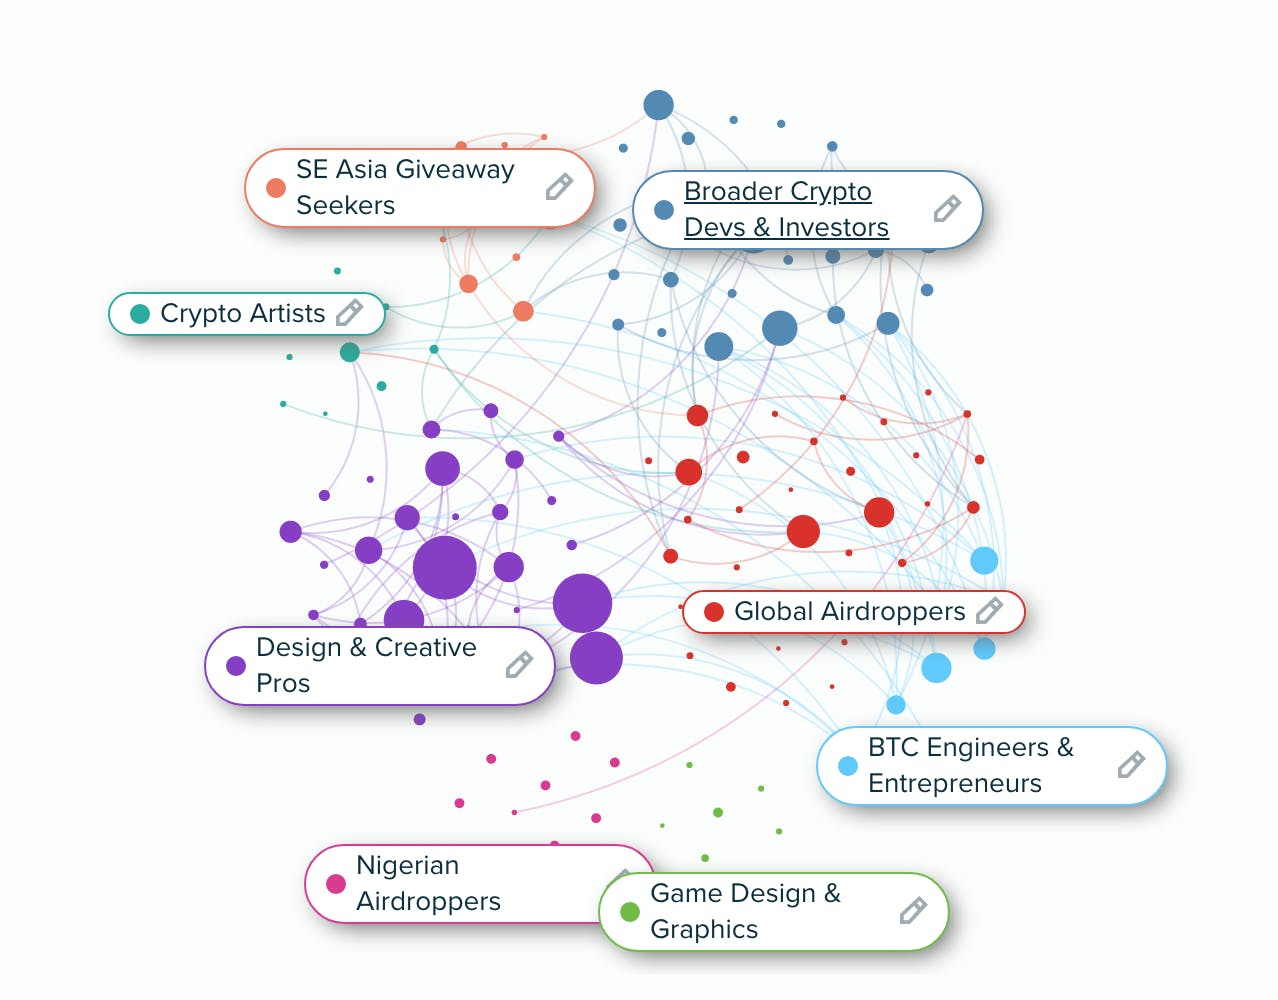 A graph from Meltwater's audience insight platform displaying the different groups of people that are engaging in the online conversation around NFTs: Crypto Artists, Design & Creative Pros, Global Airdroppers, etc.